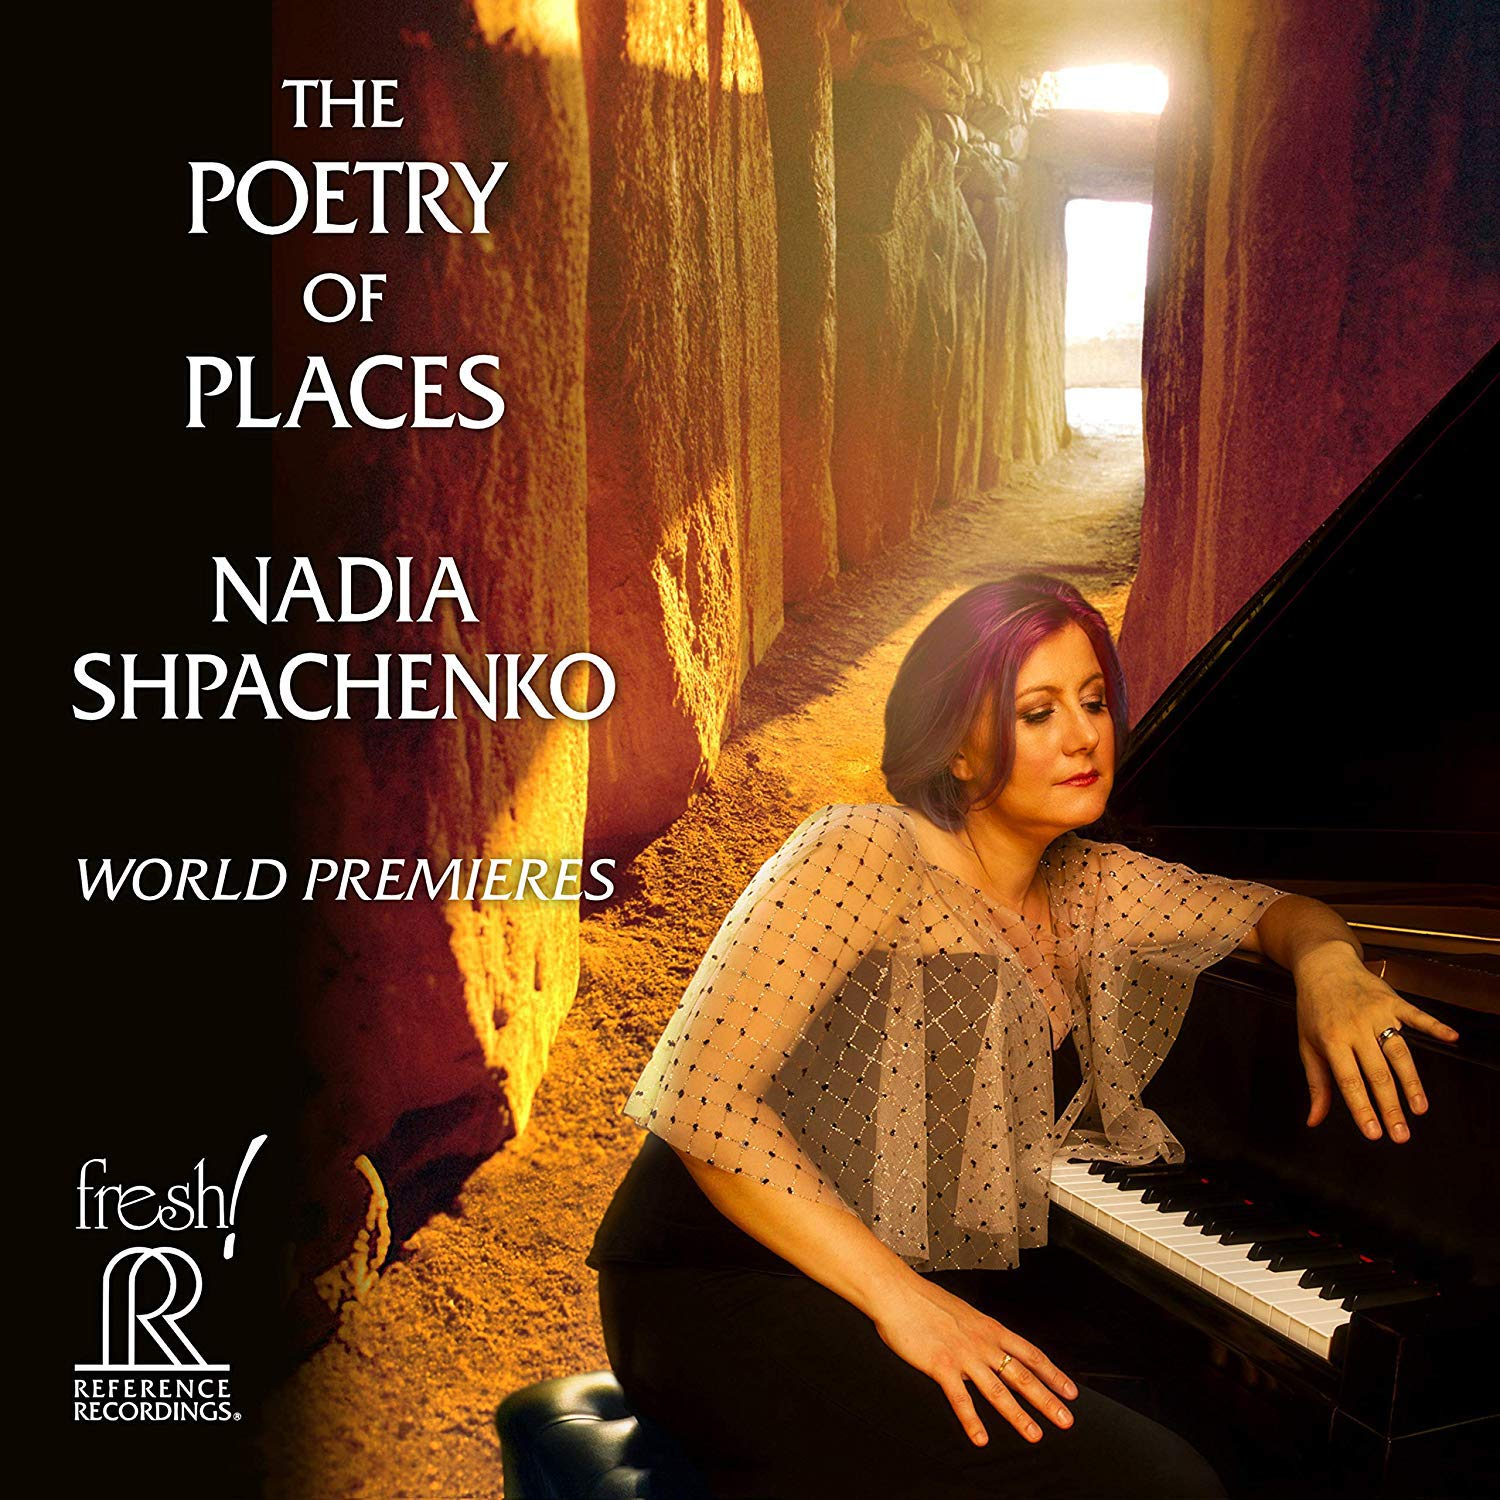 Album review: Pianist Shpachenko premieres music with a sense of